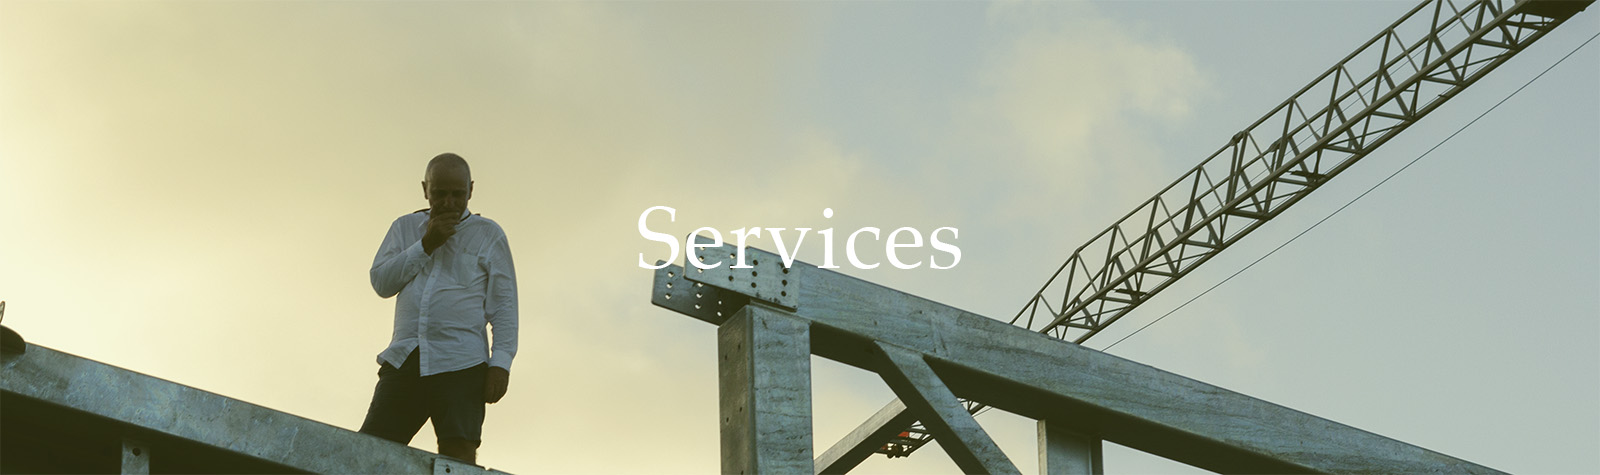 Services Civil Engineering & Construction